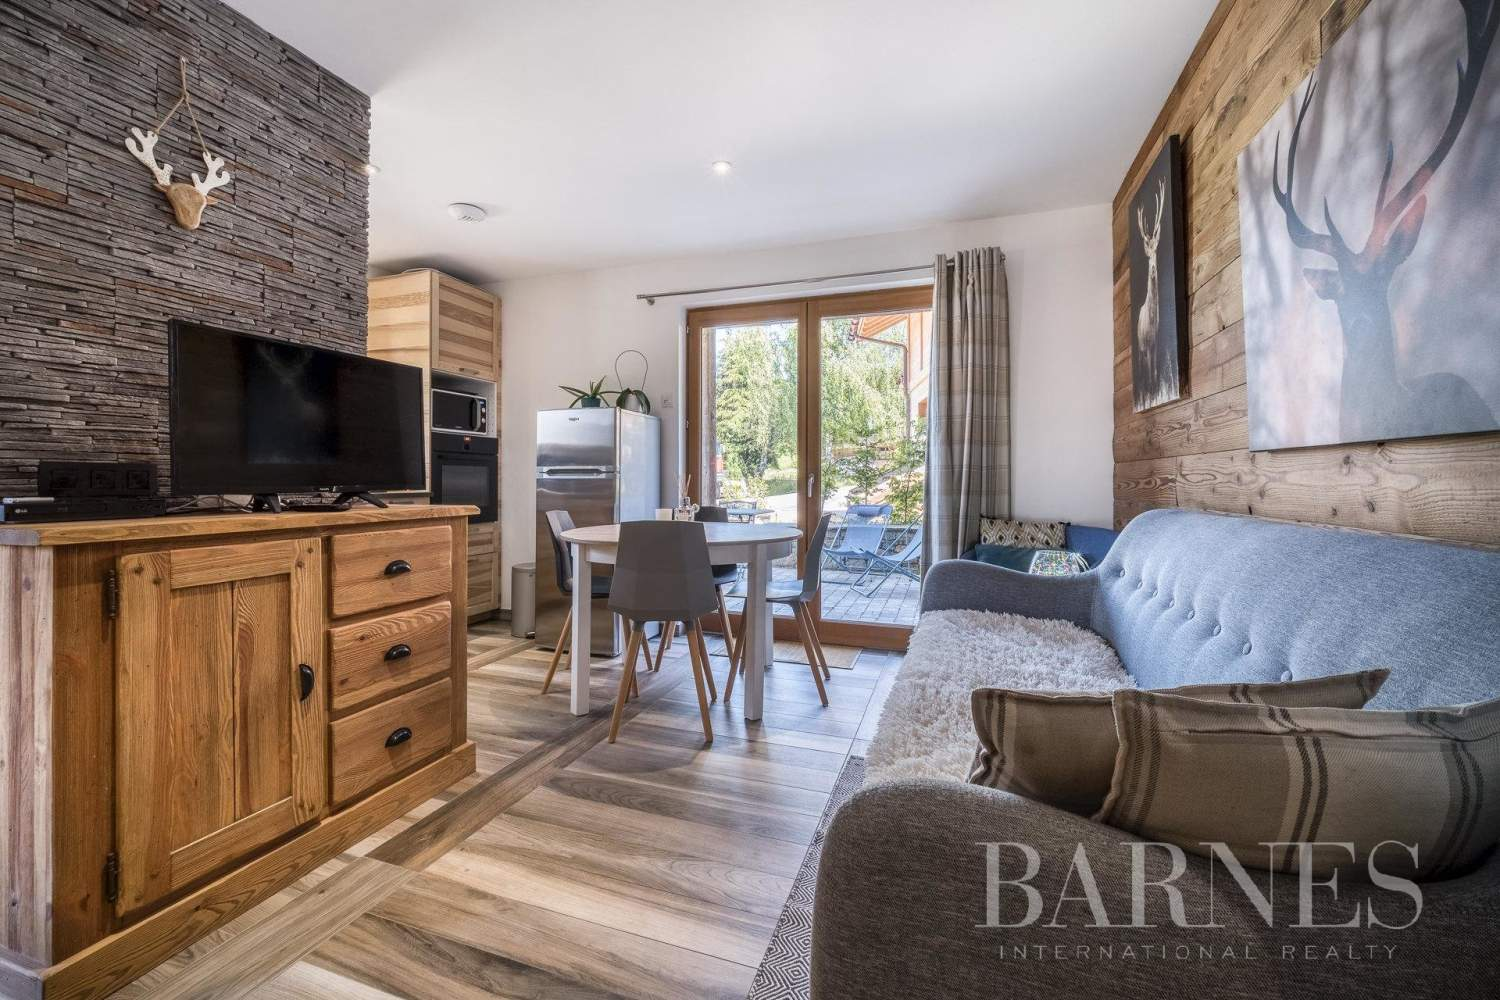 Exclusive to Barnes - Stunning ski-in chalet situated on La Princesse ski slopes picture 12